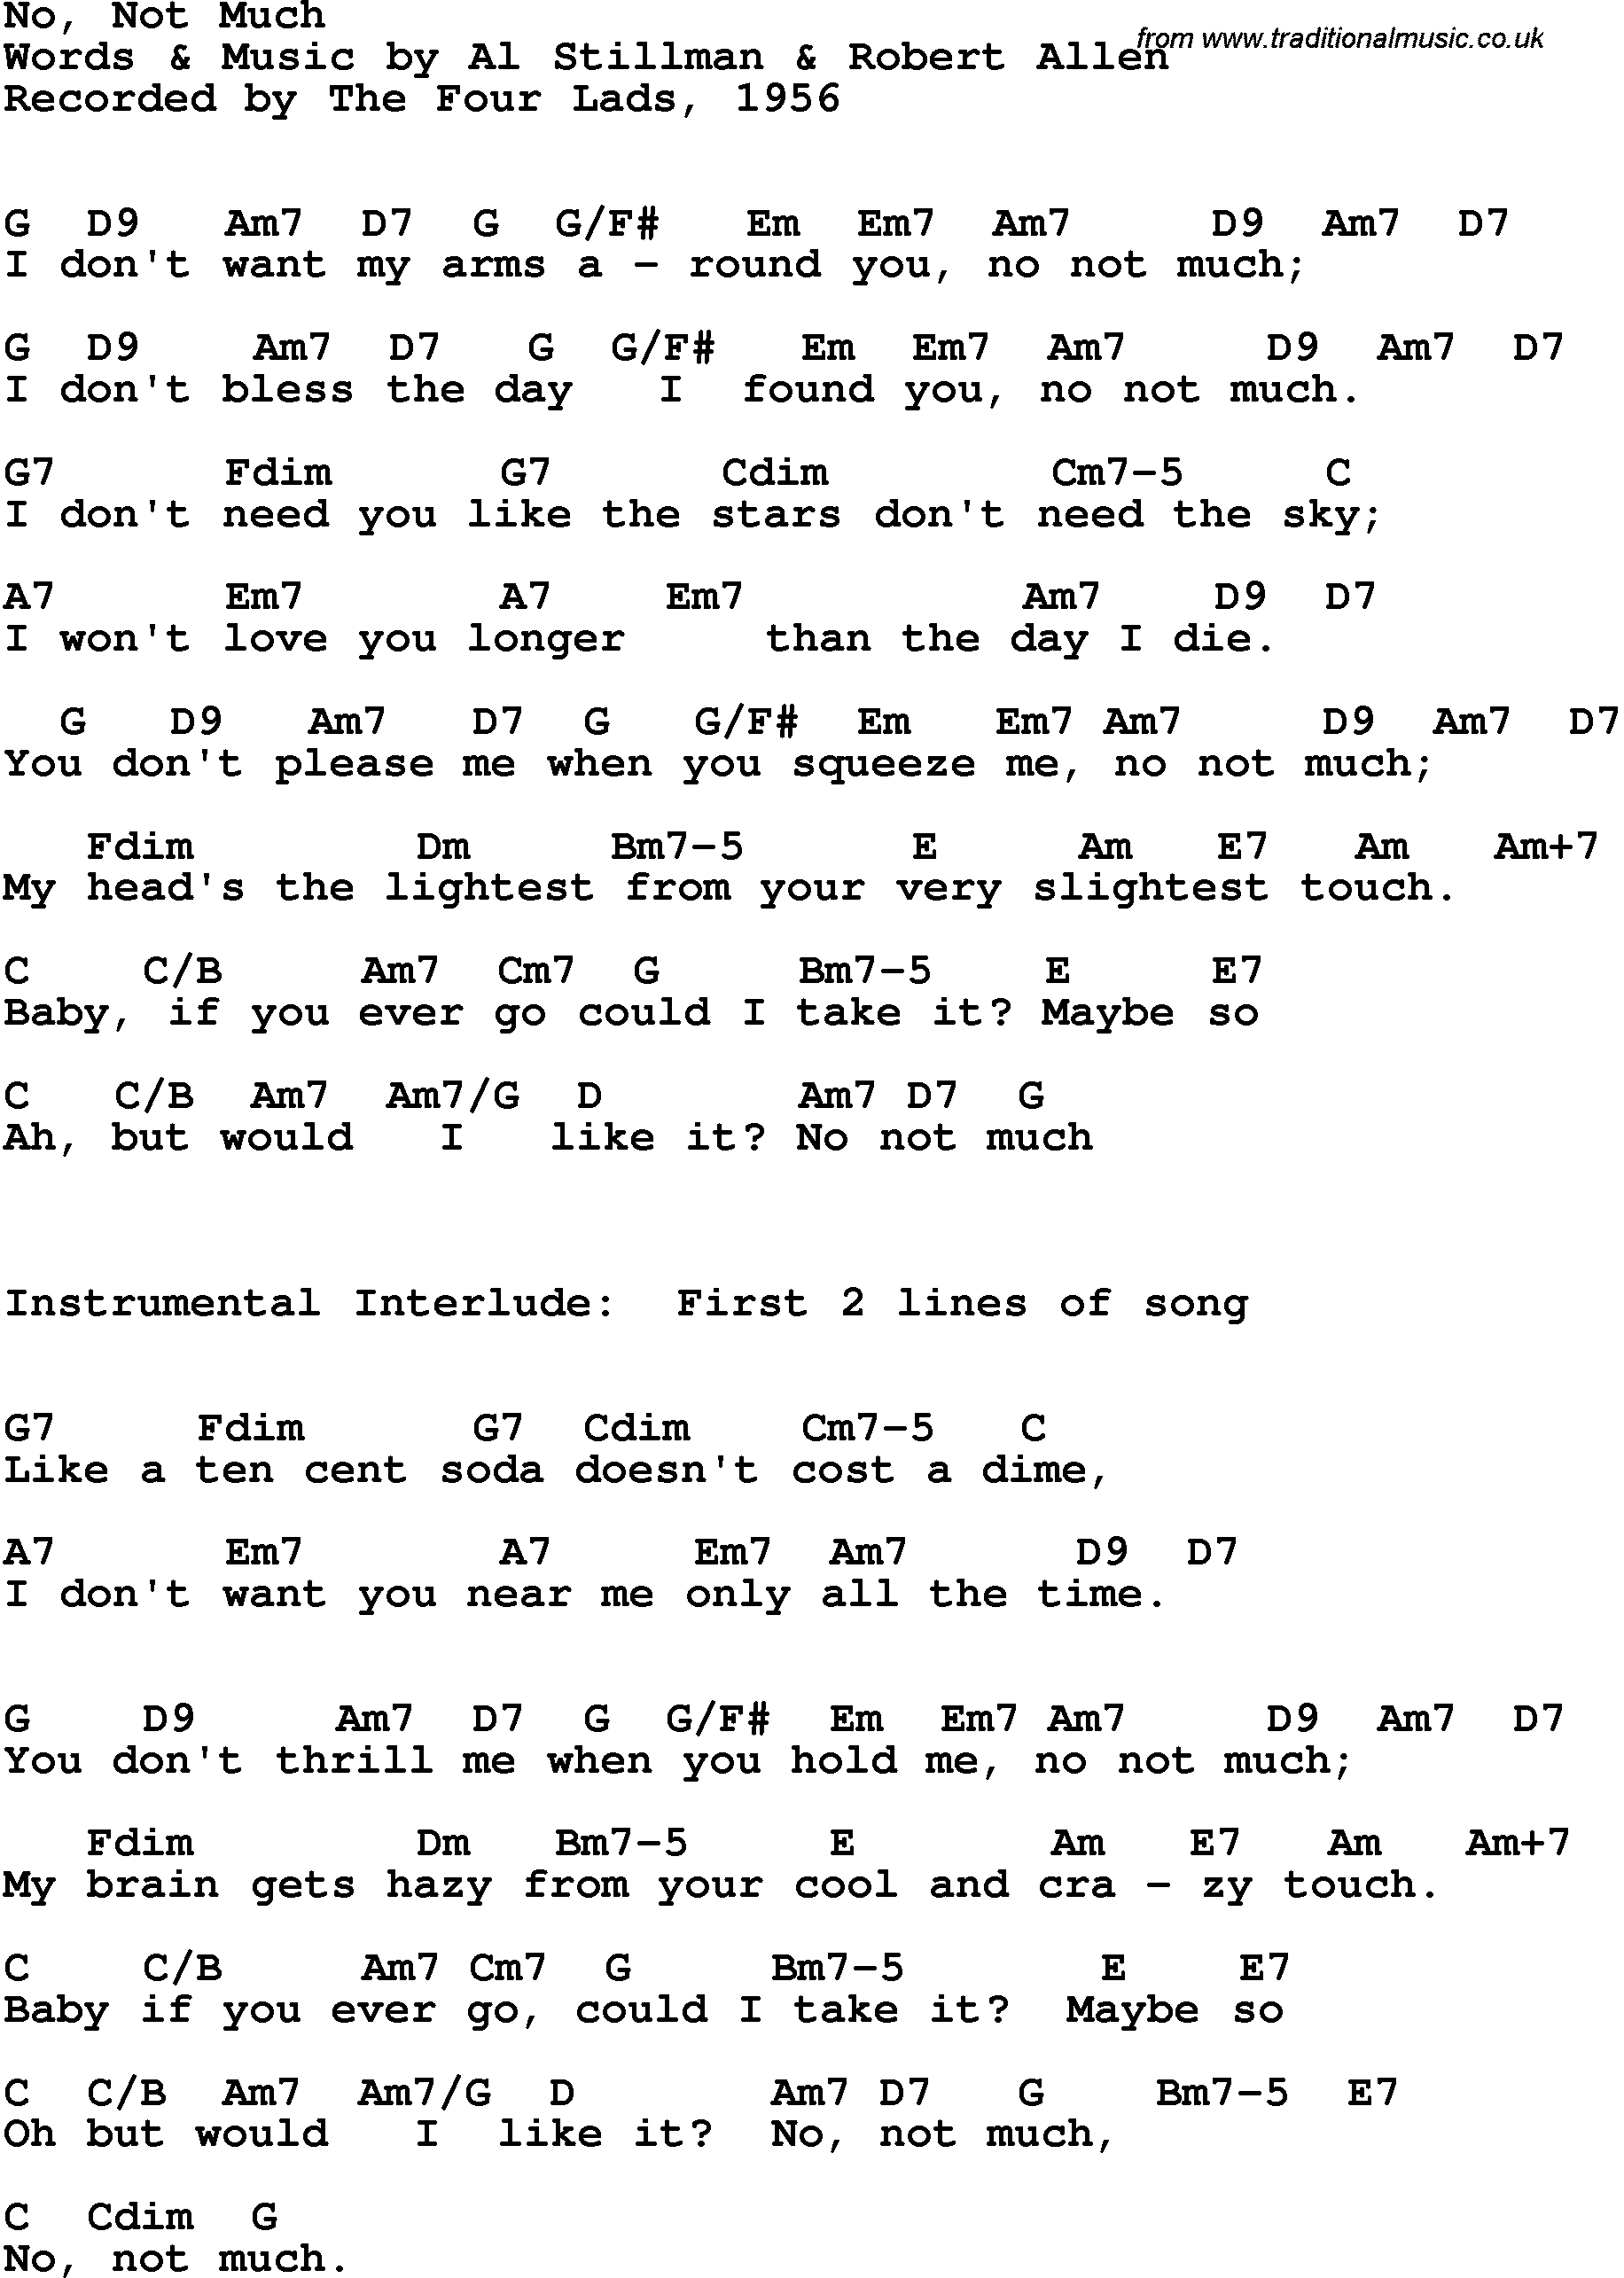 Song Lyrics With Guitar Chords For No Not Much The Four Lads 1956